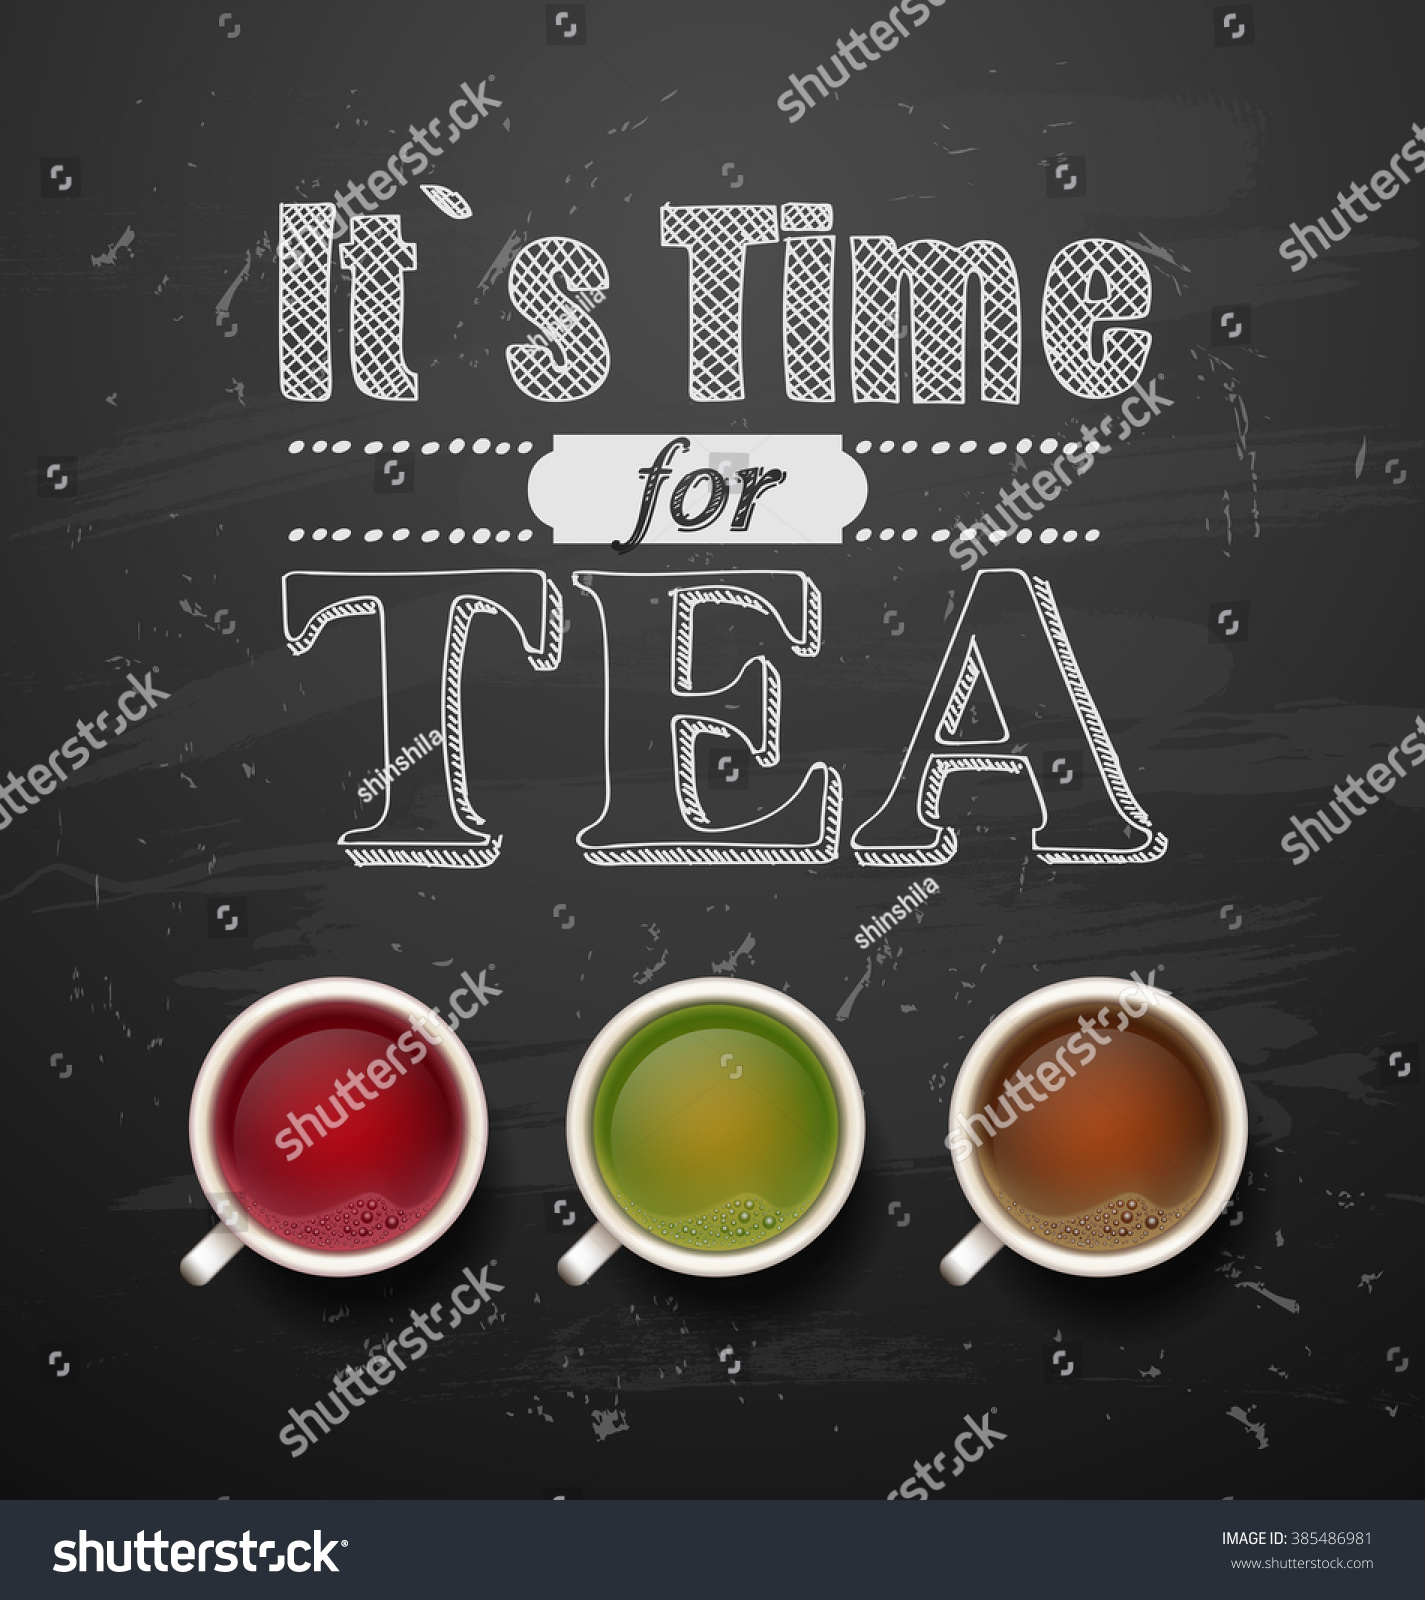 Royalty Free Good Morning Types Of Tea Tea Cups 385486981